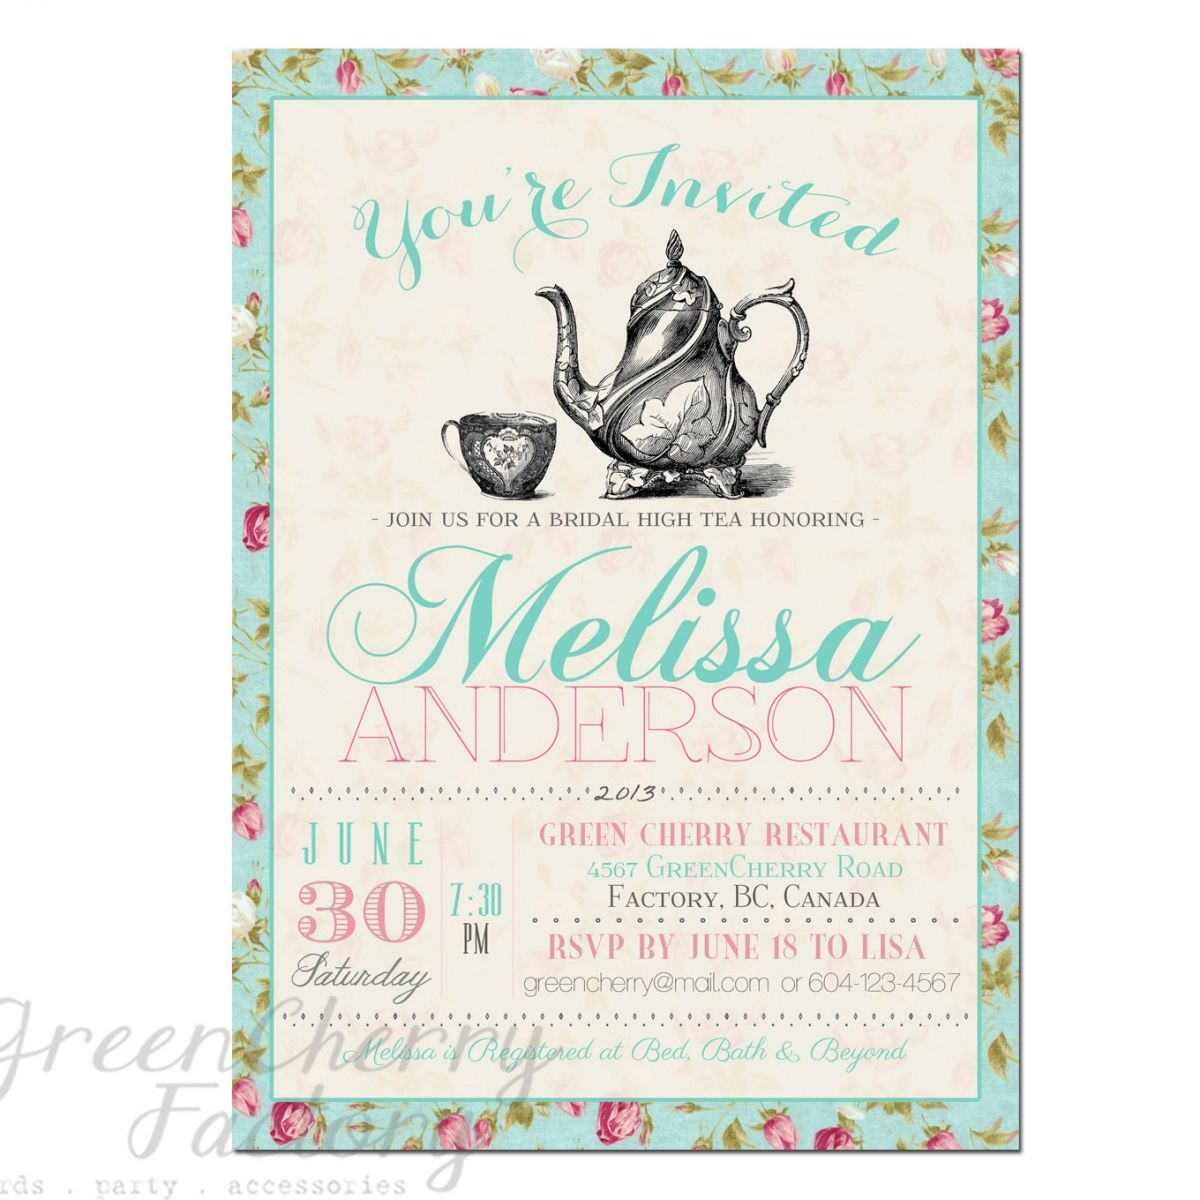 Tea party invitation templates to print free printable tea party tea party invitation templates to print free printable tea party invitations templates stopboris